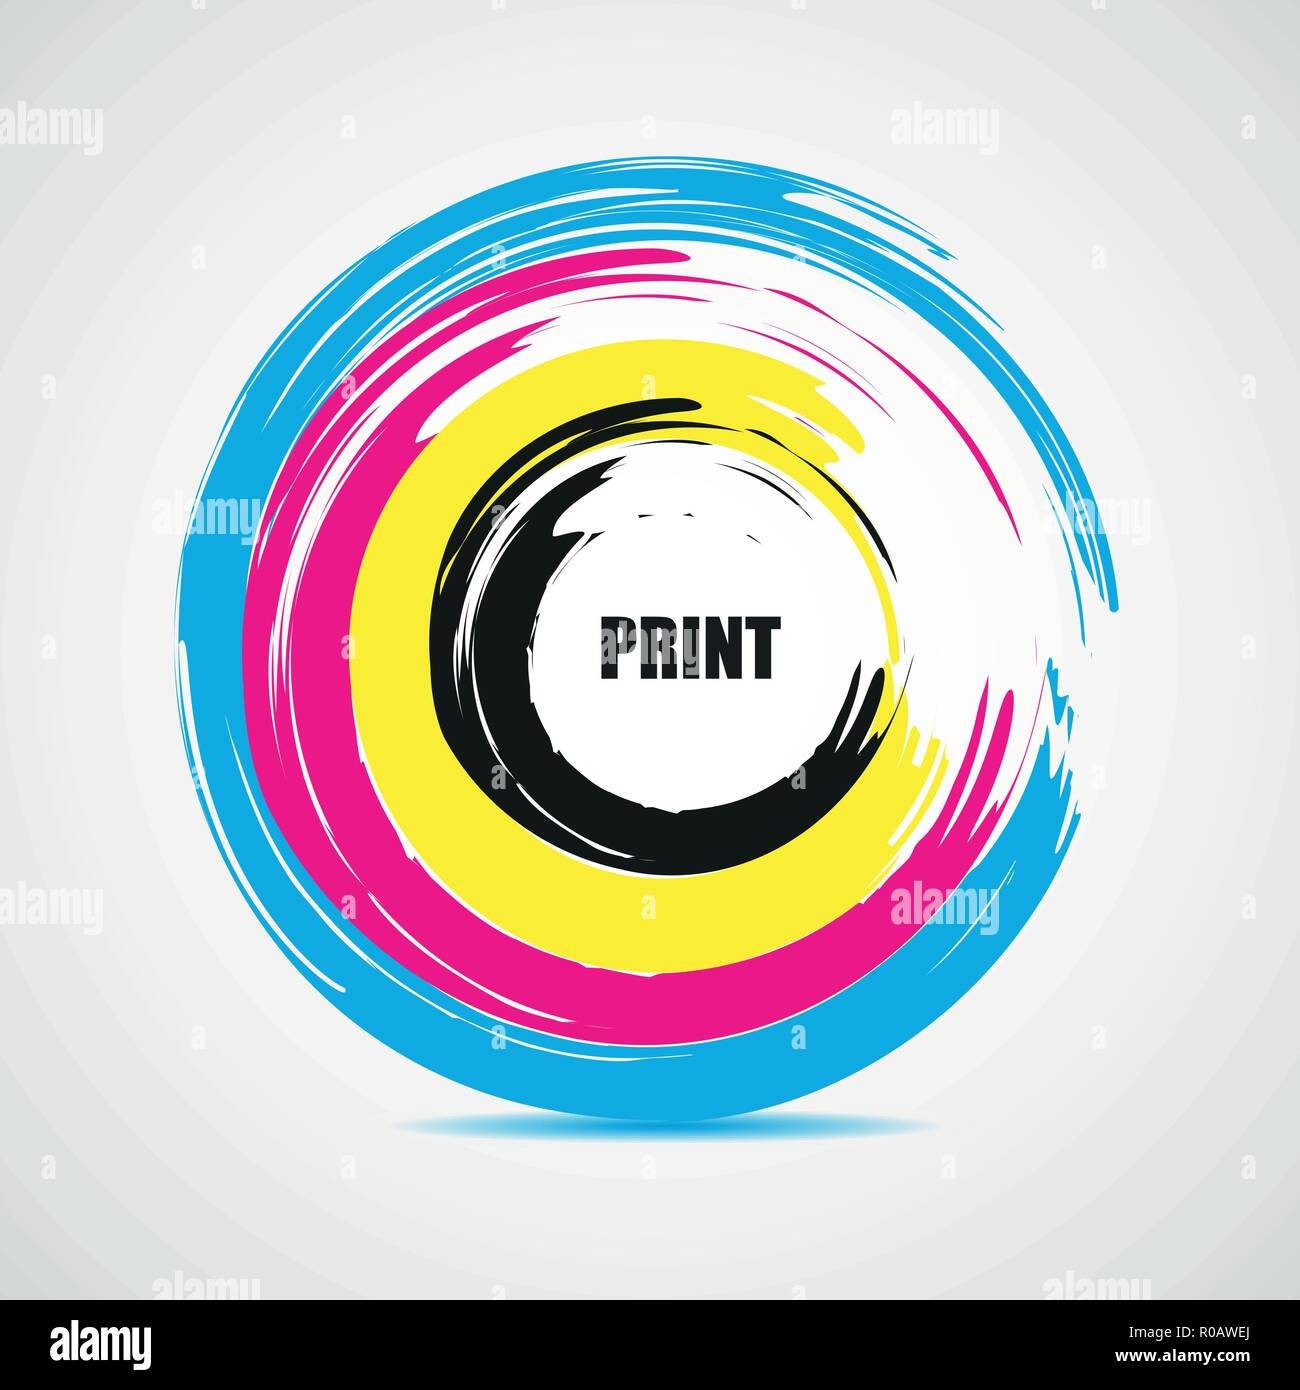 illustration of cmyk printing color circle vector EPS10 - Stock Vector